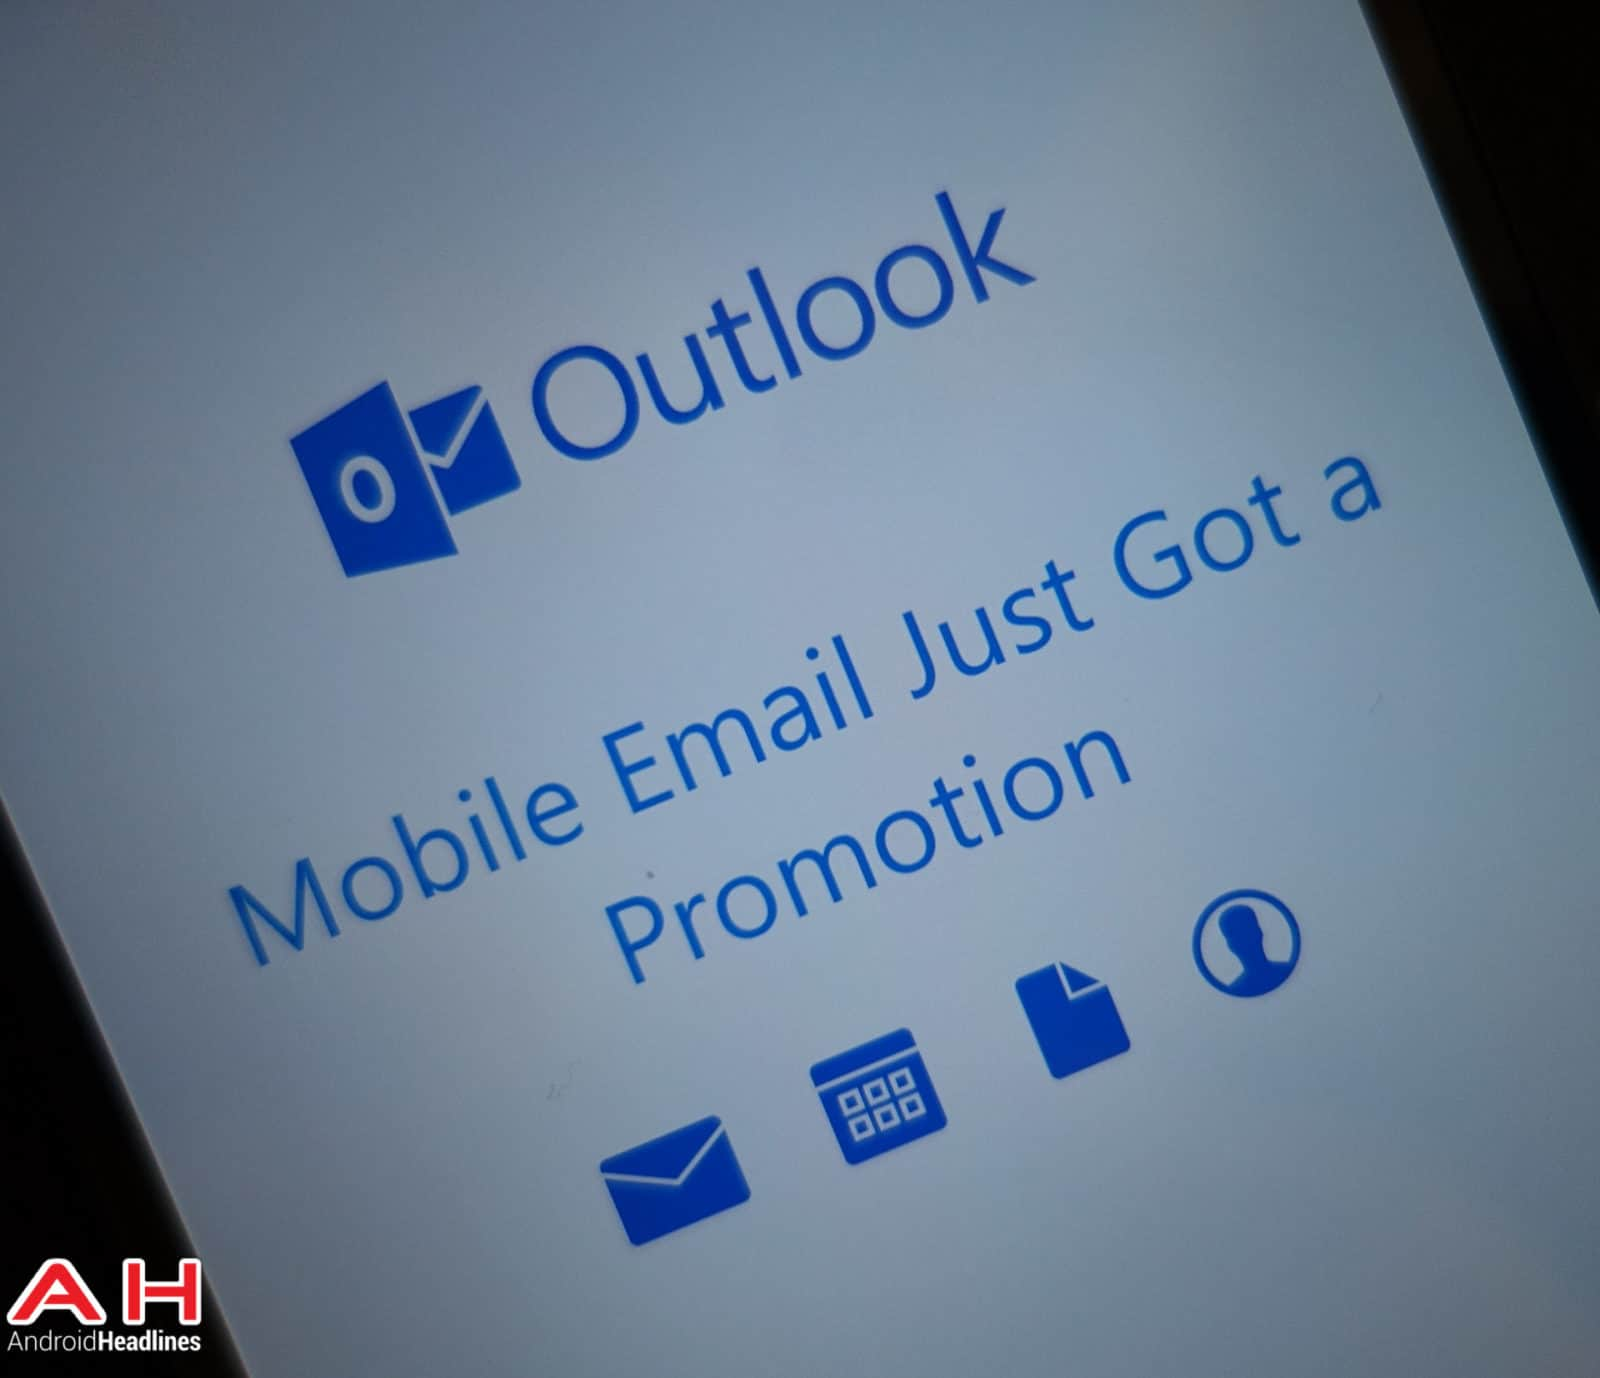 Outlook-Android-AH-03377